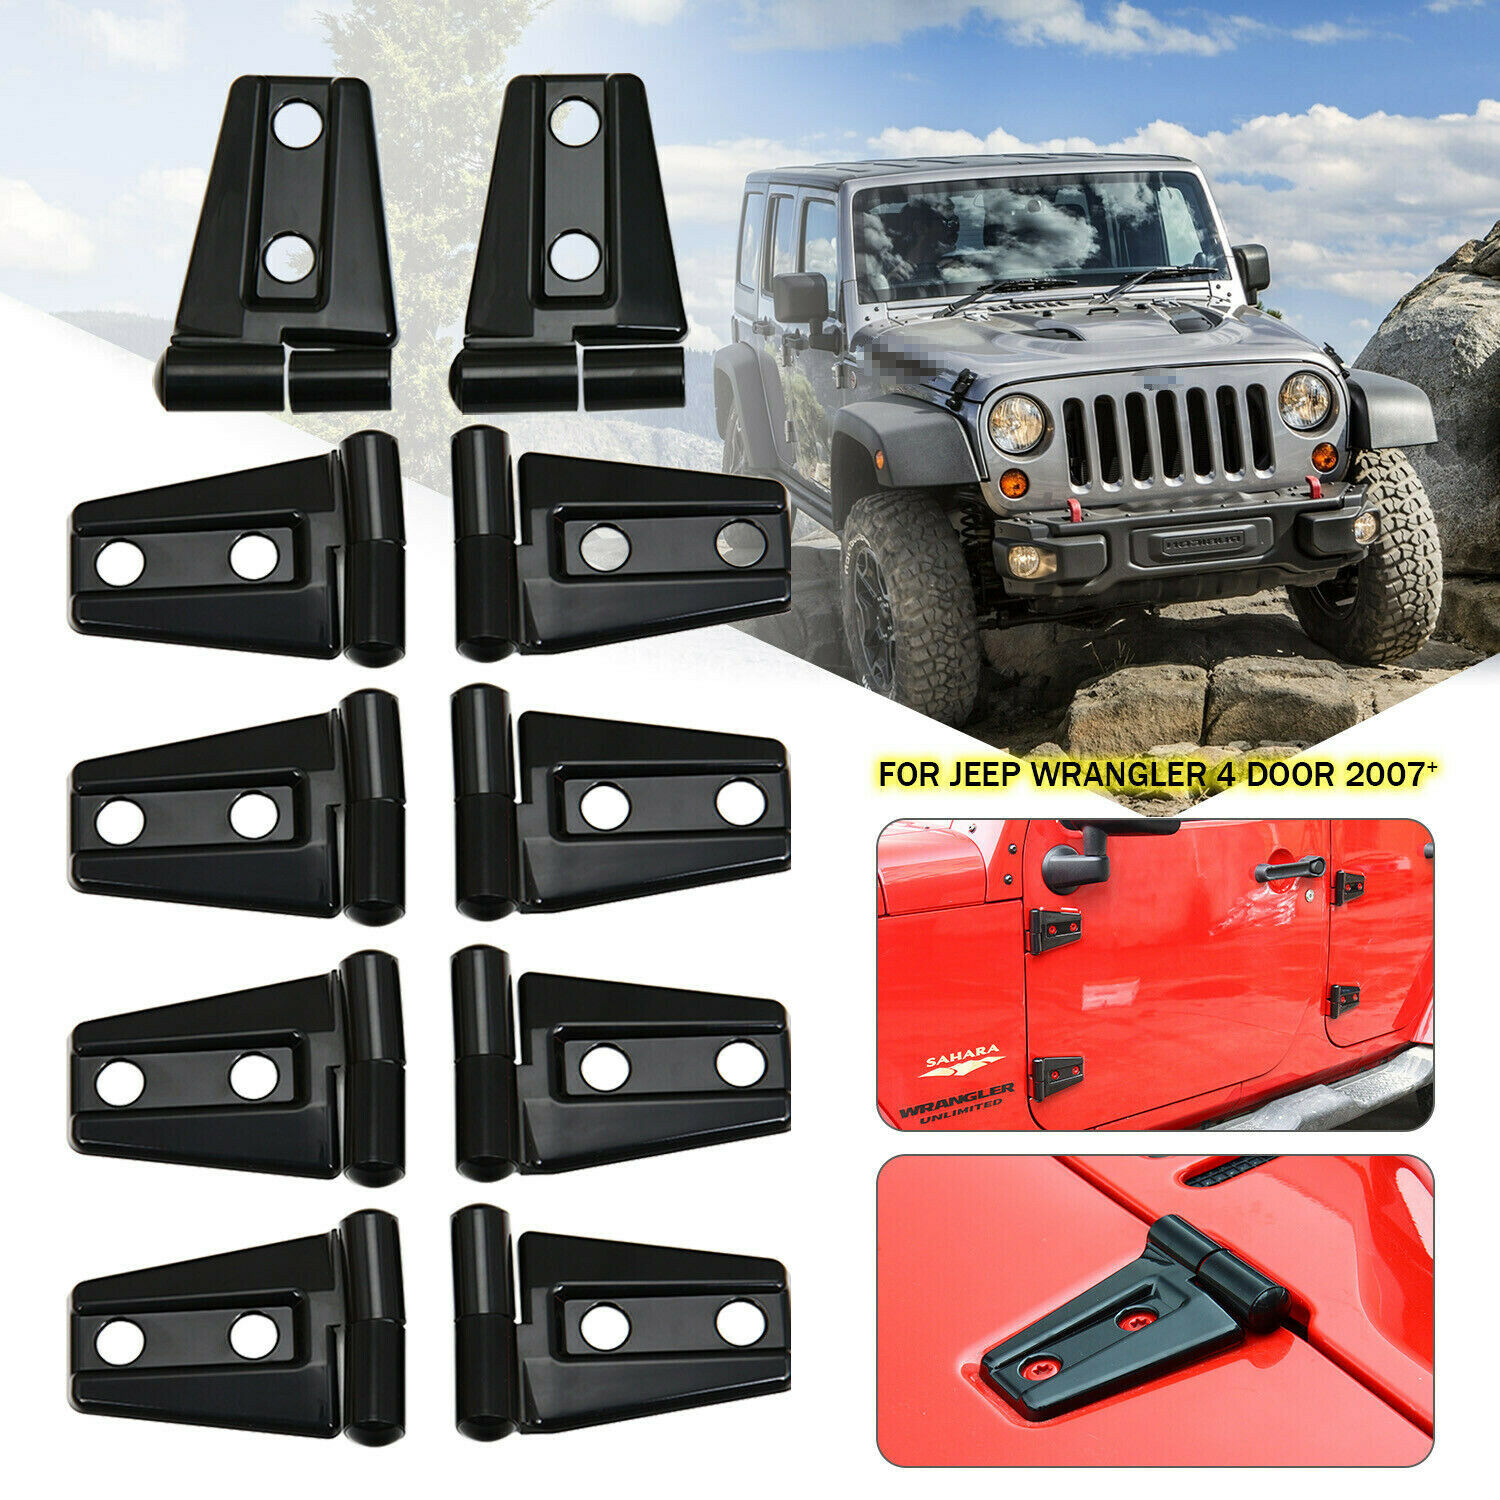 Jeep Wrangler Accessories 2017 >> Details About Hood Door Hinge Cover For 2007 2017 Jeep Wrangler Jk Jku Unlimited Accessories